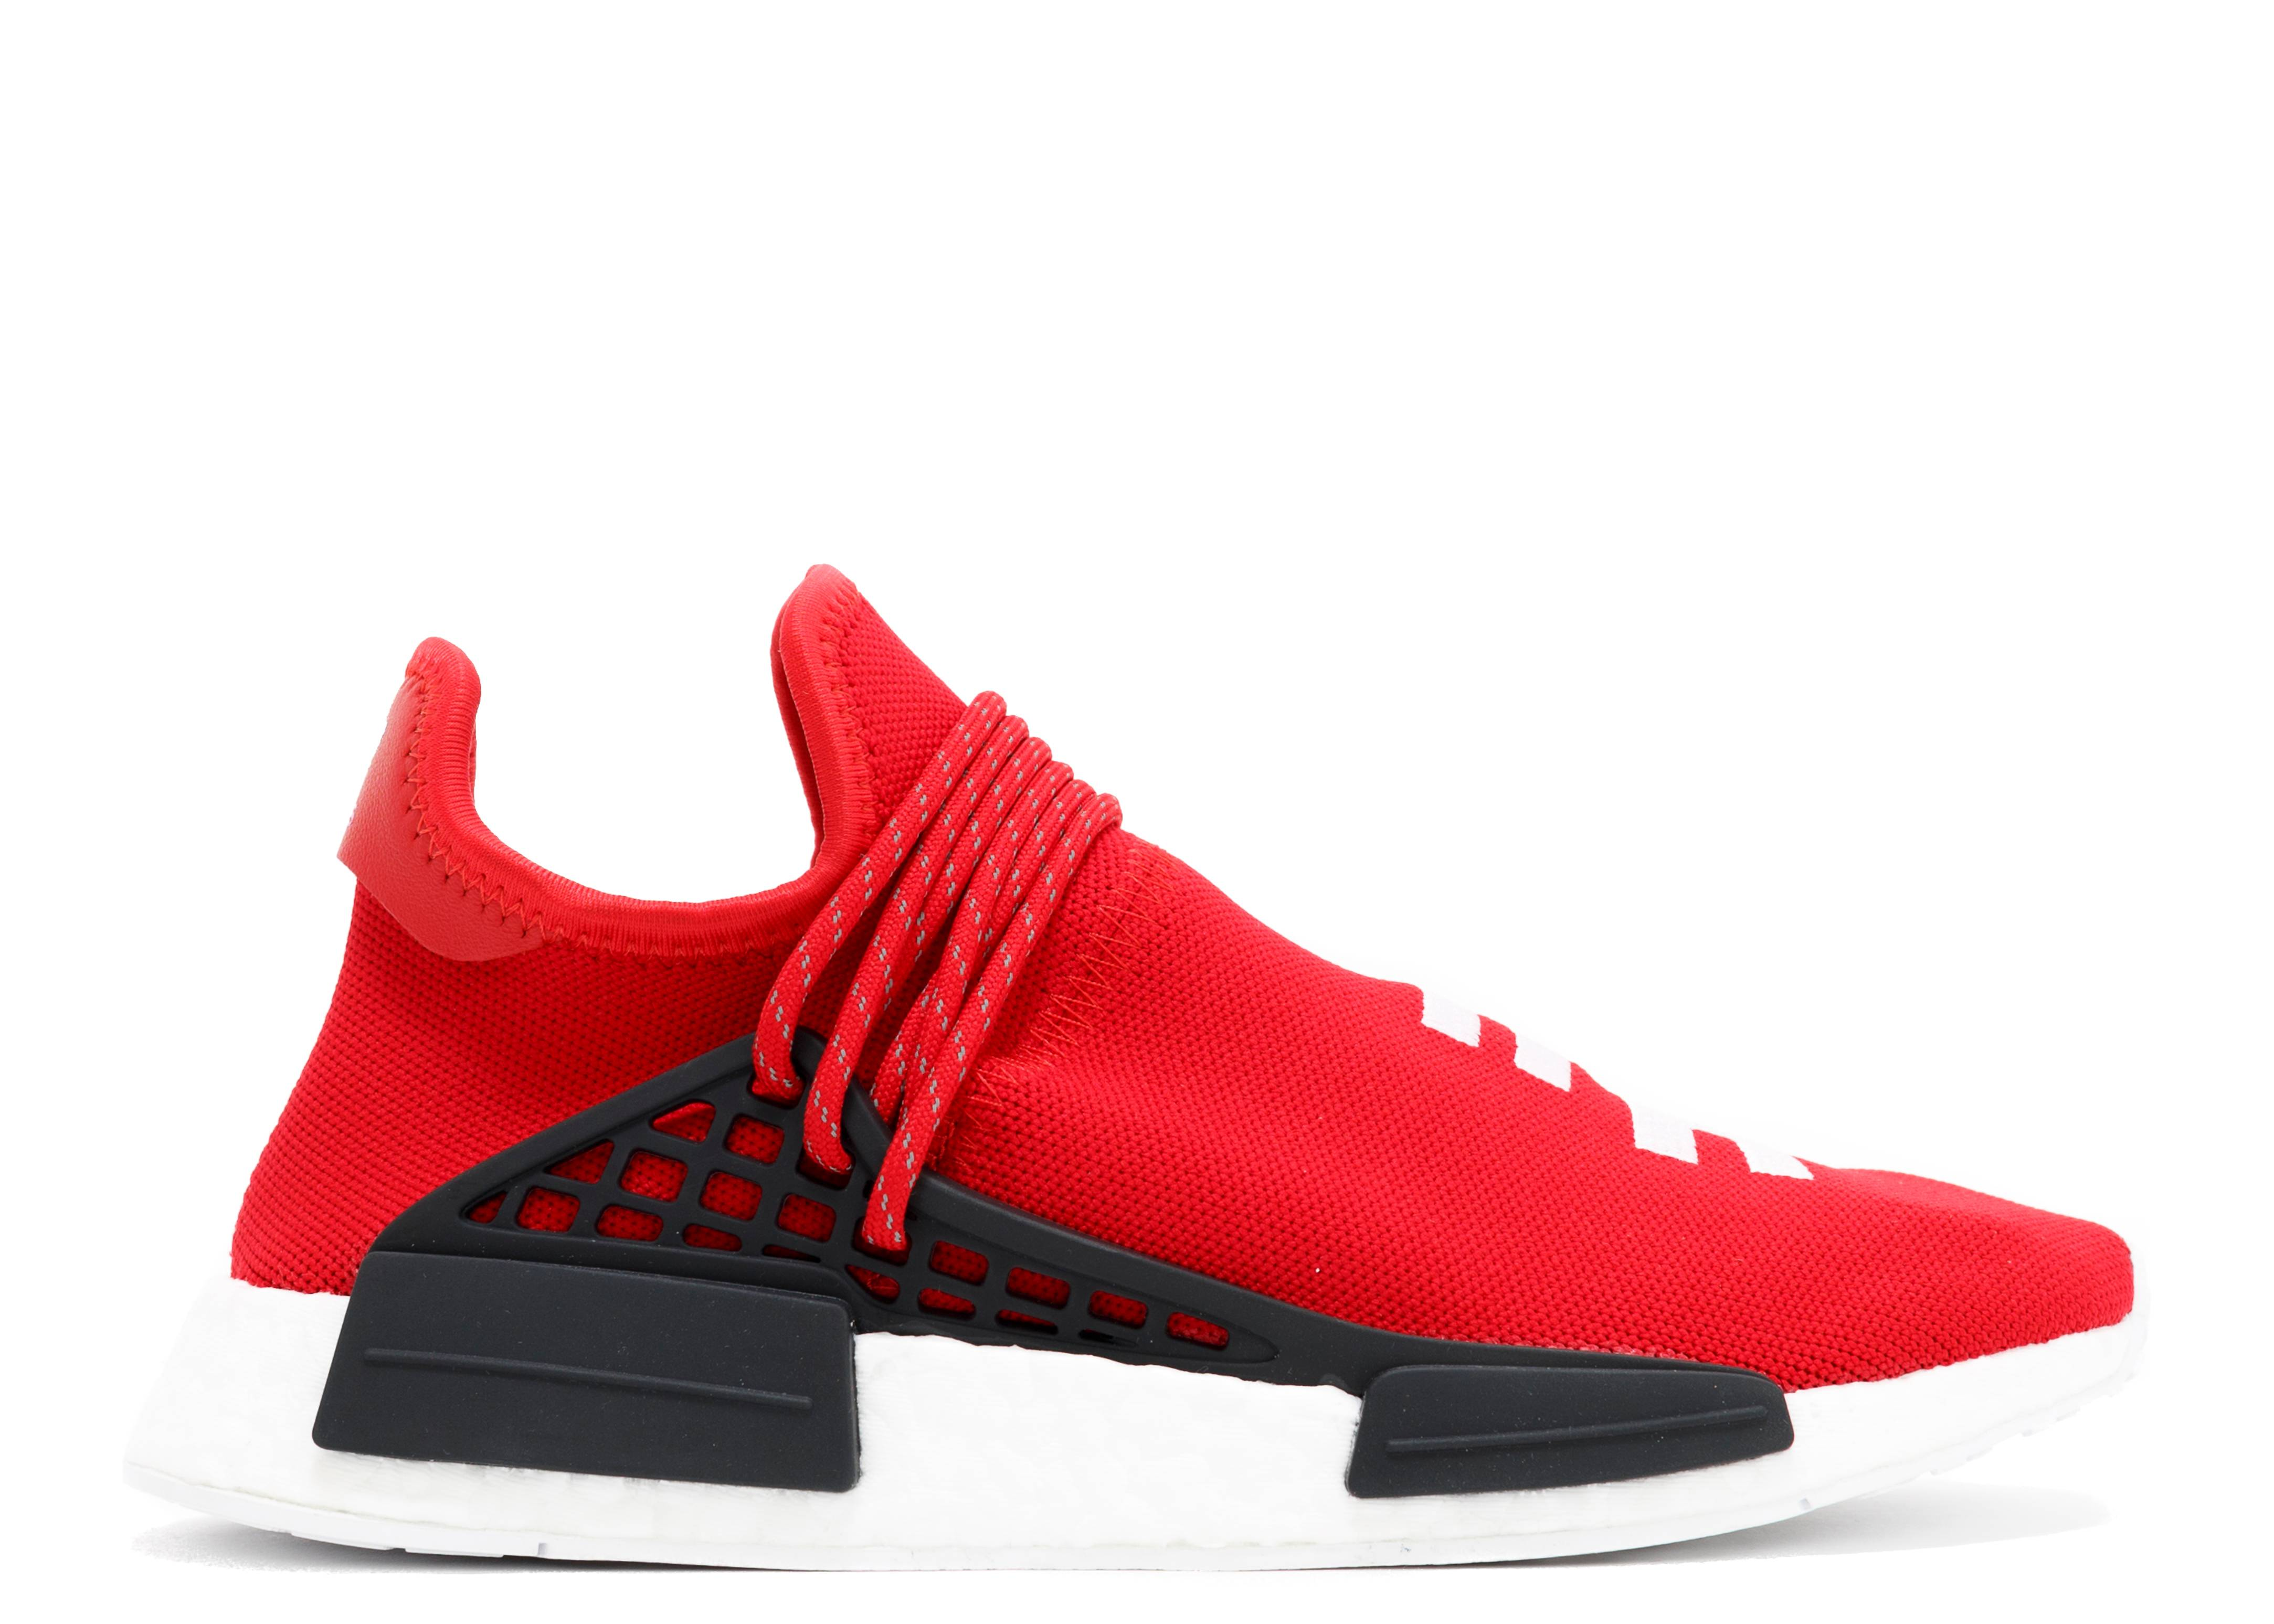 Buy UA NMD Human Race Green White Black at Wholesale Price